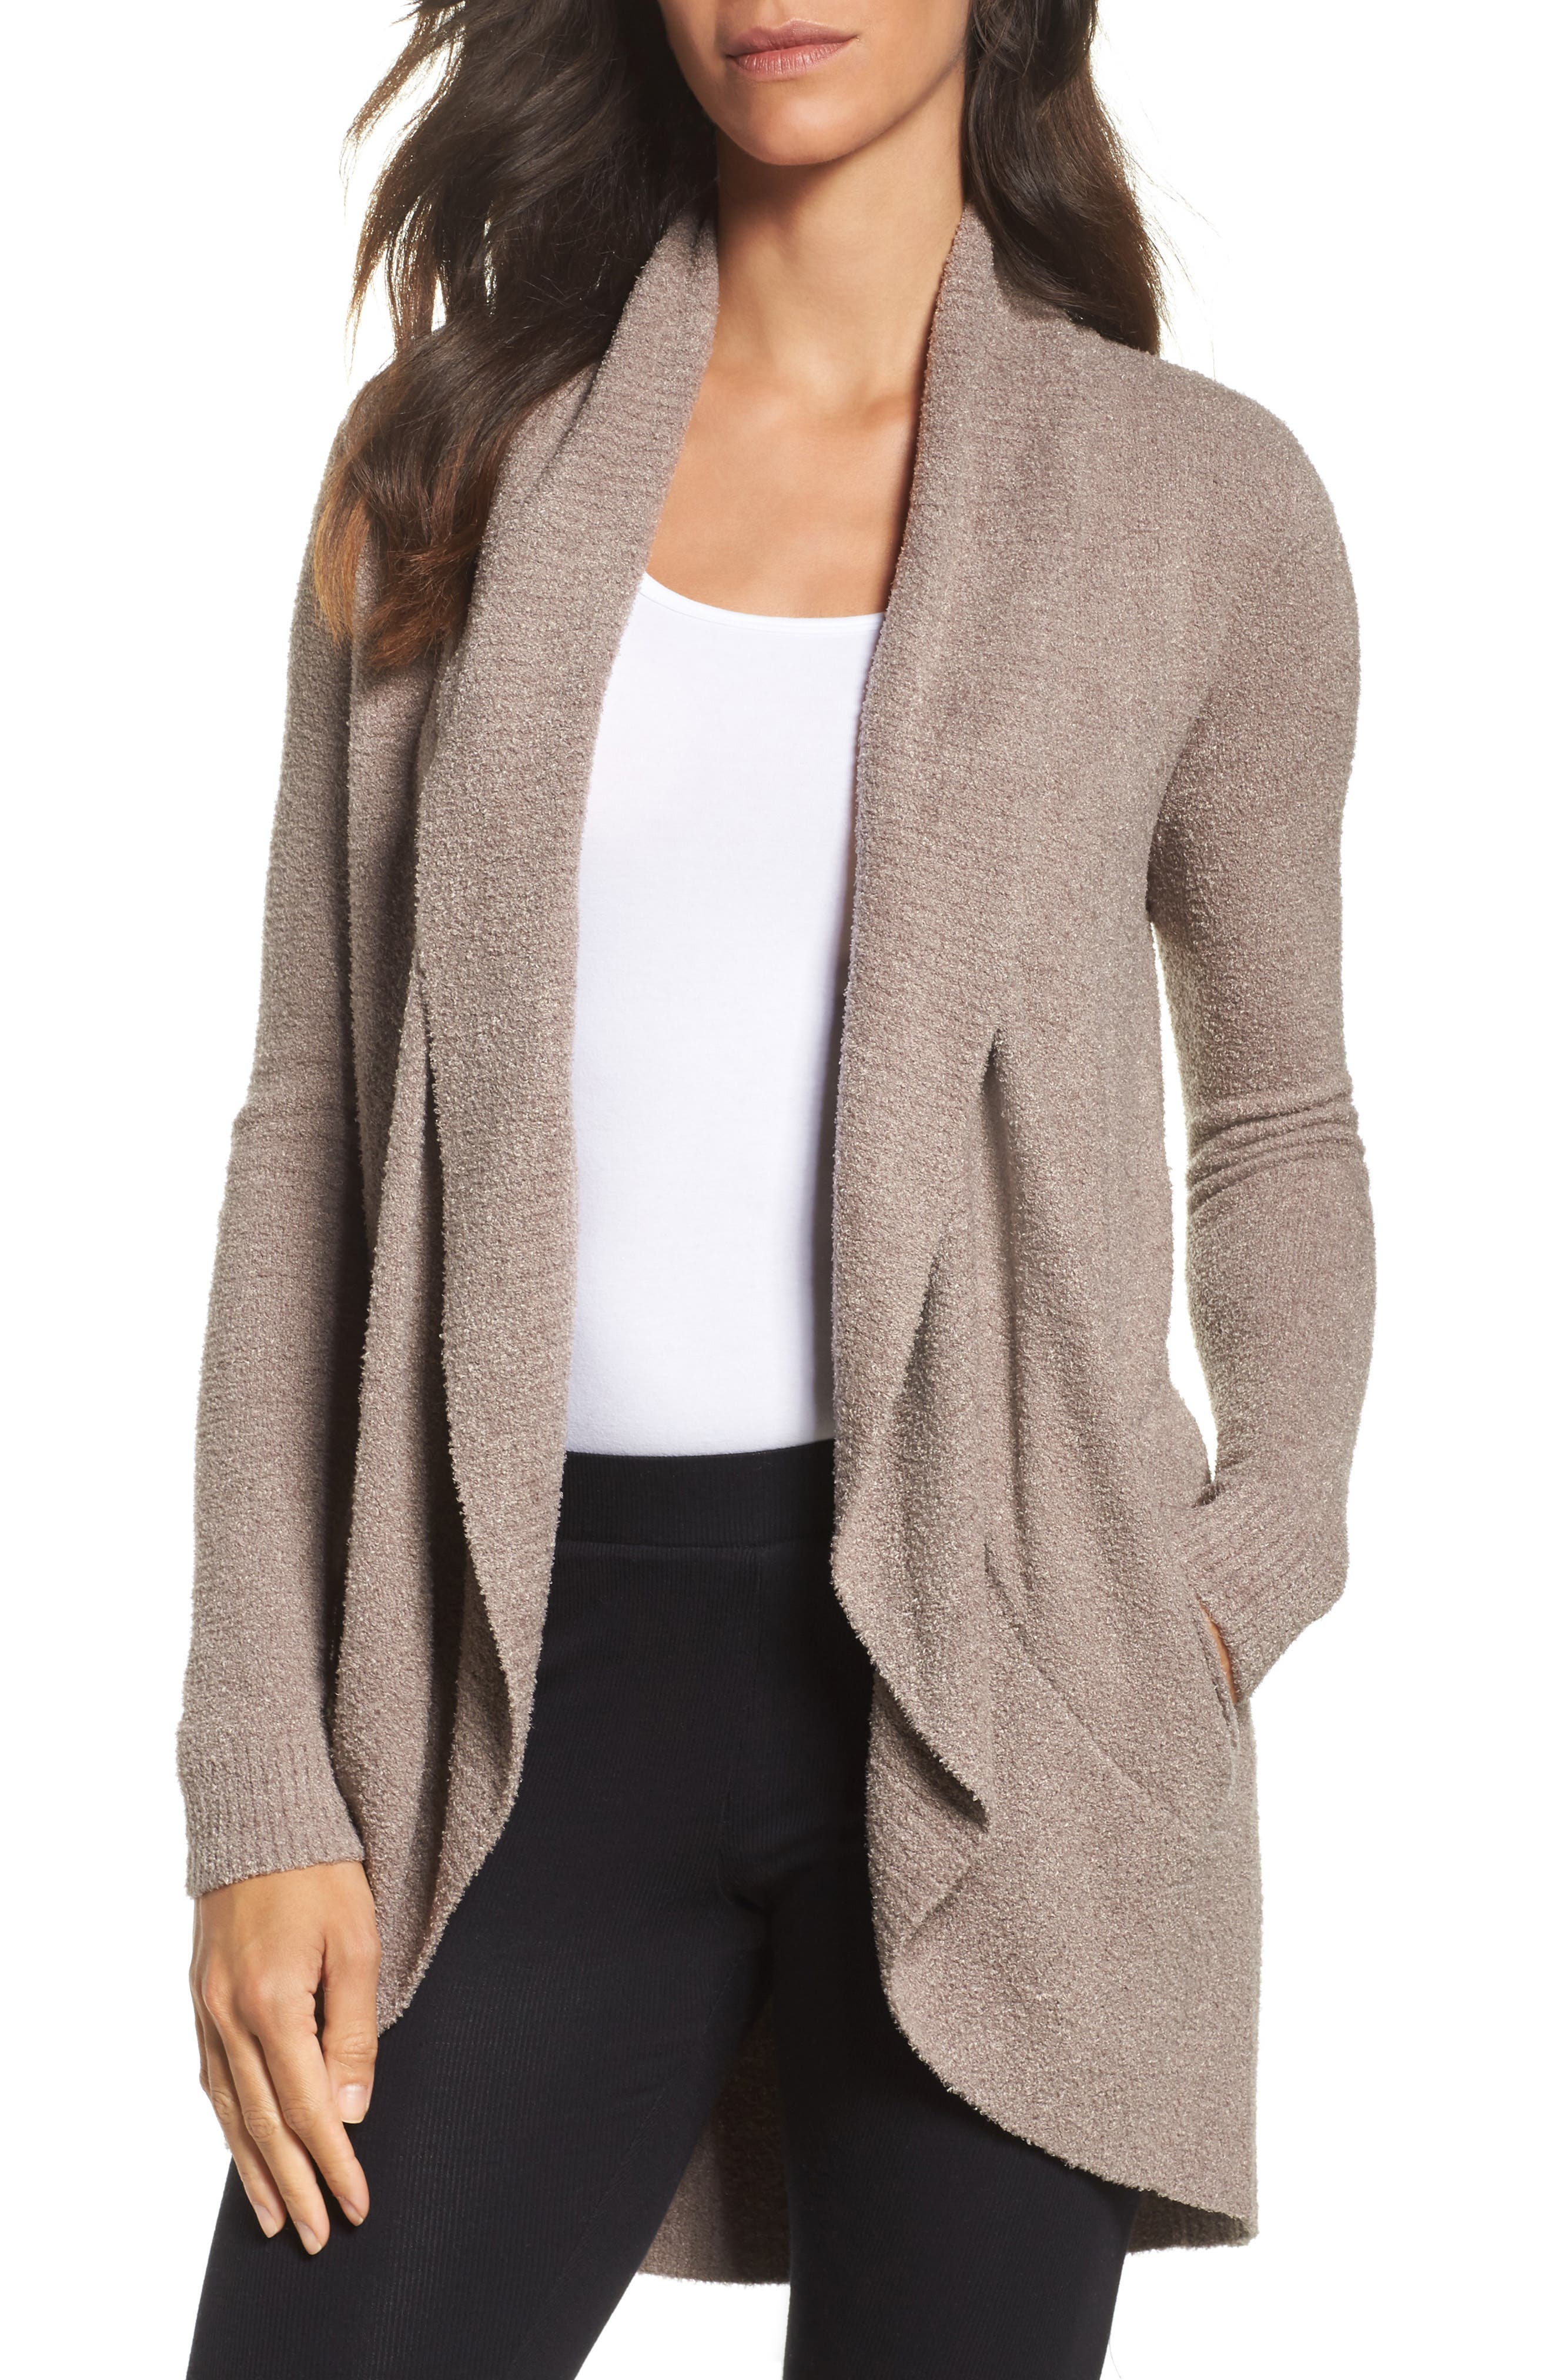 Nordstrom Women's Brown Sweaters Nordstrom Sweaters Brown Women's dqx7Y07wB